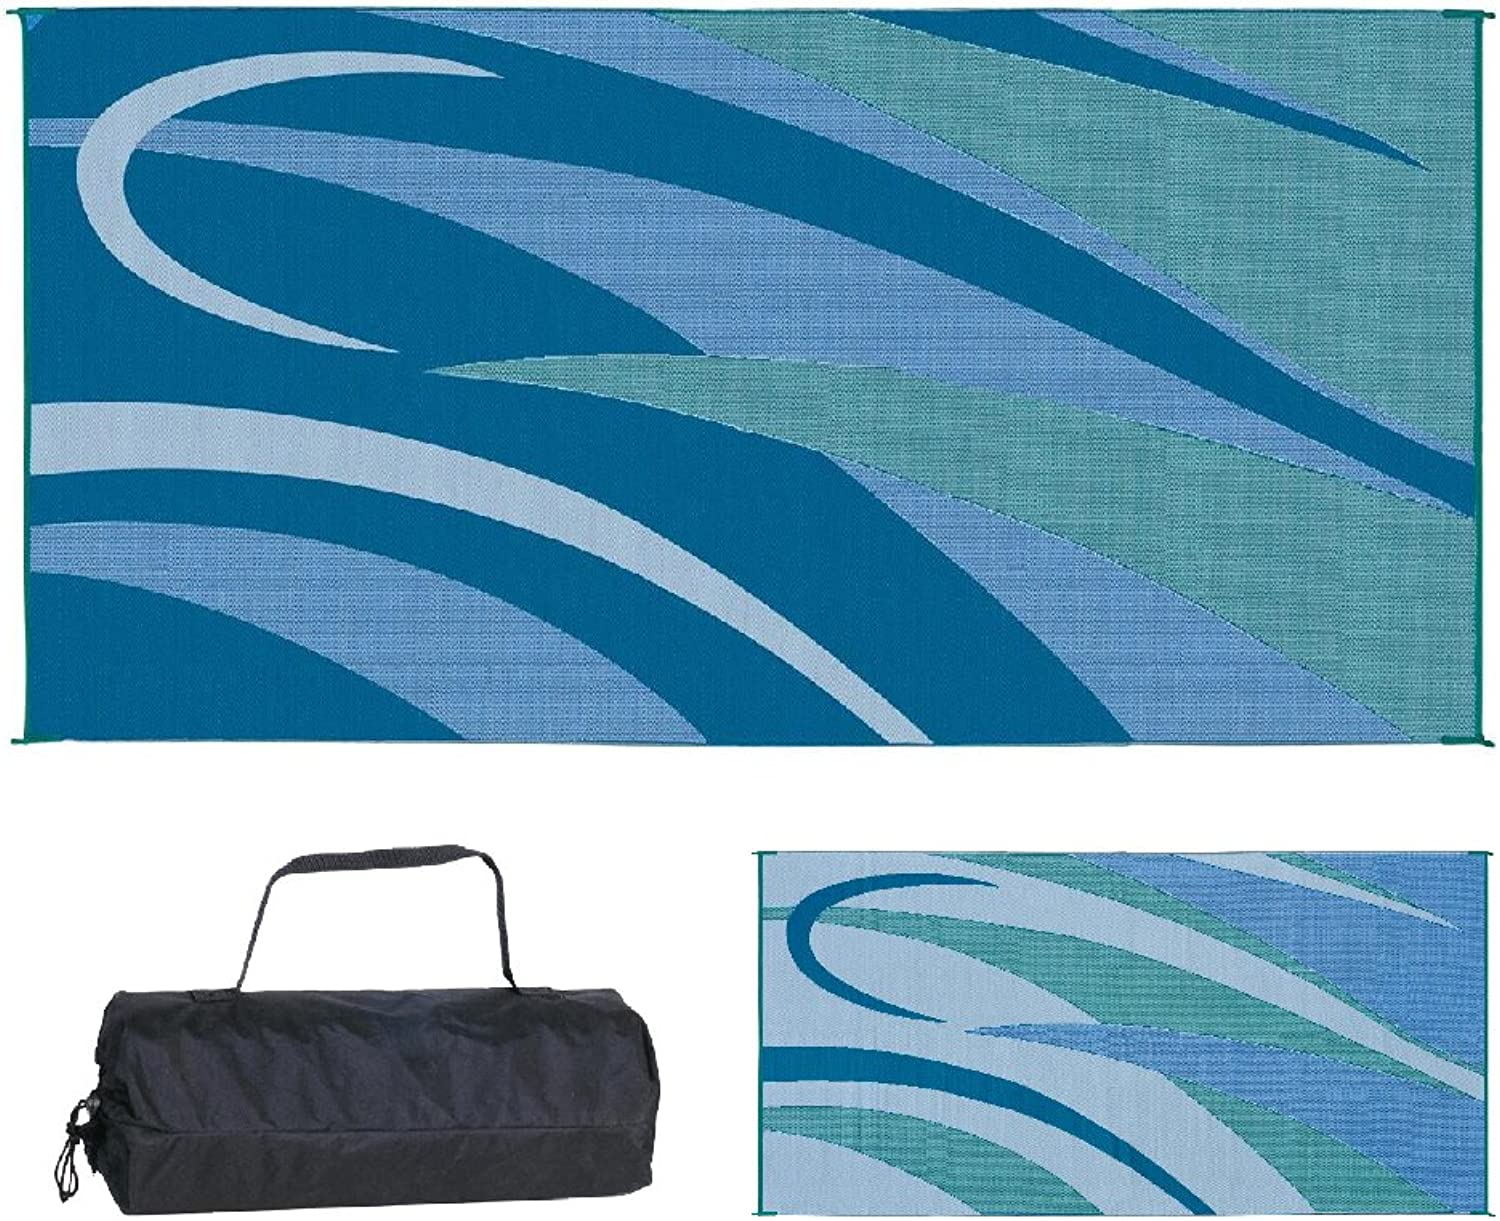 Ming's Mark GB3 bluee Green 8' x 16' Graphic Mat